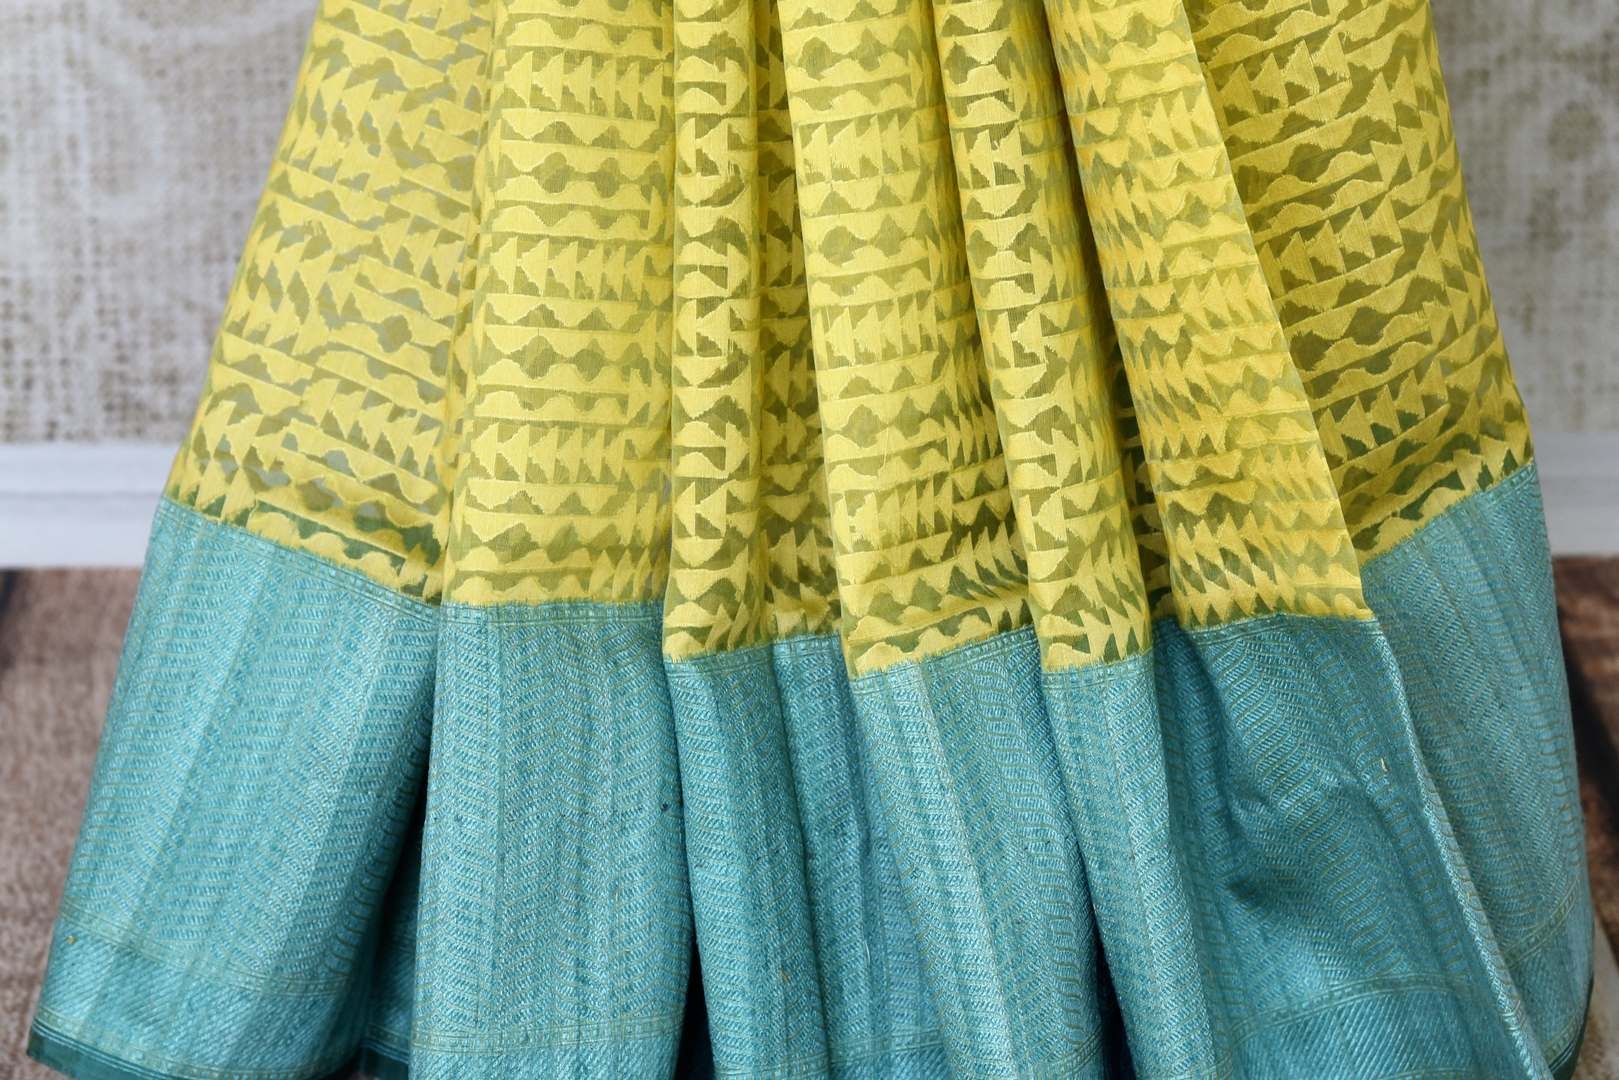 Serenade in solace in our yellow kora banarsi silk saree. The rustic blue border graces the wonderful facade of this silk sari, Style this stunning sari with a contrasting mint blue blouse with buta work. Shop handloom sarees, linen sari, chiffon sarees online or visit Pure Elegance store, USA.-pleats